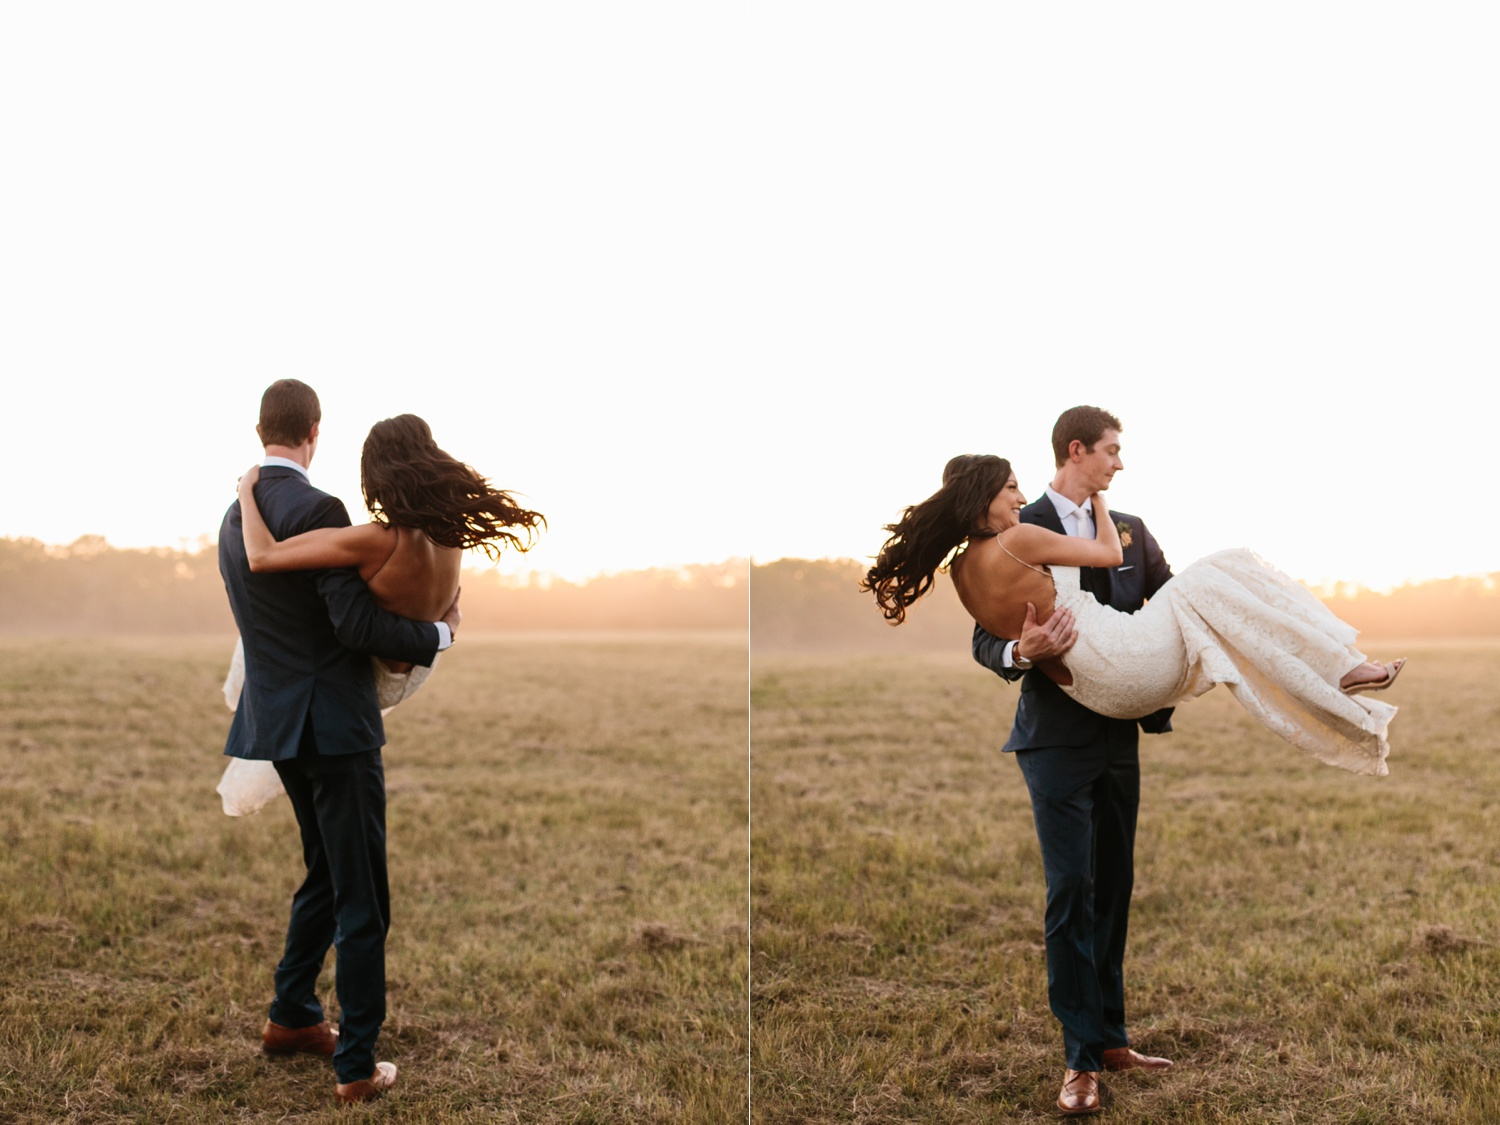 Erica + Henry | a bohemian inspired wedding at Chandlers Gardens in Salina, TX by North Texas Wedding Photographer Rachel Meagan Photography 111